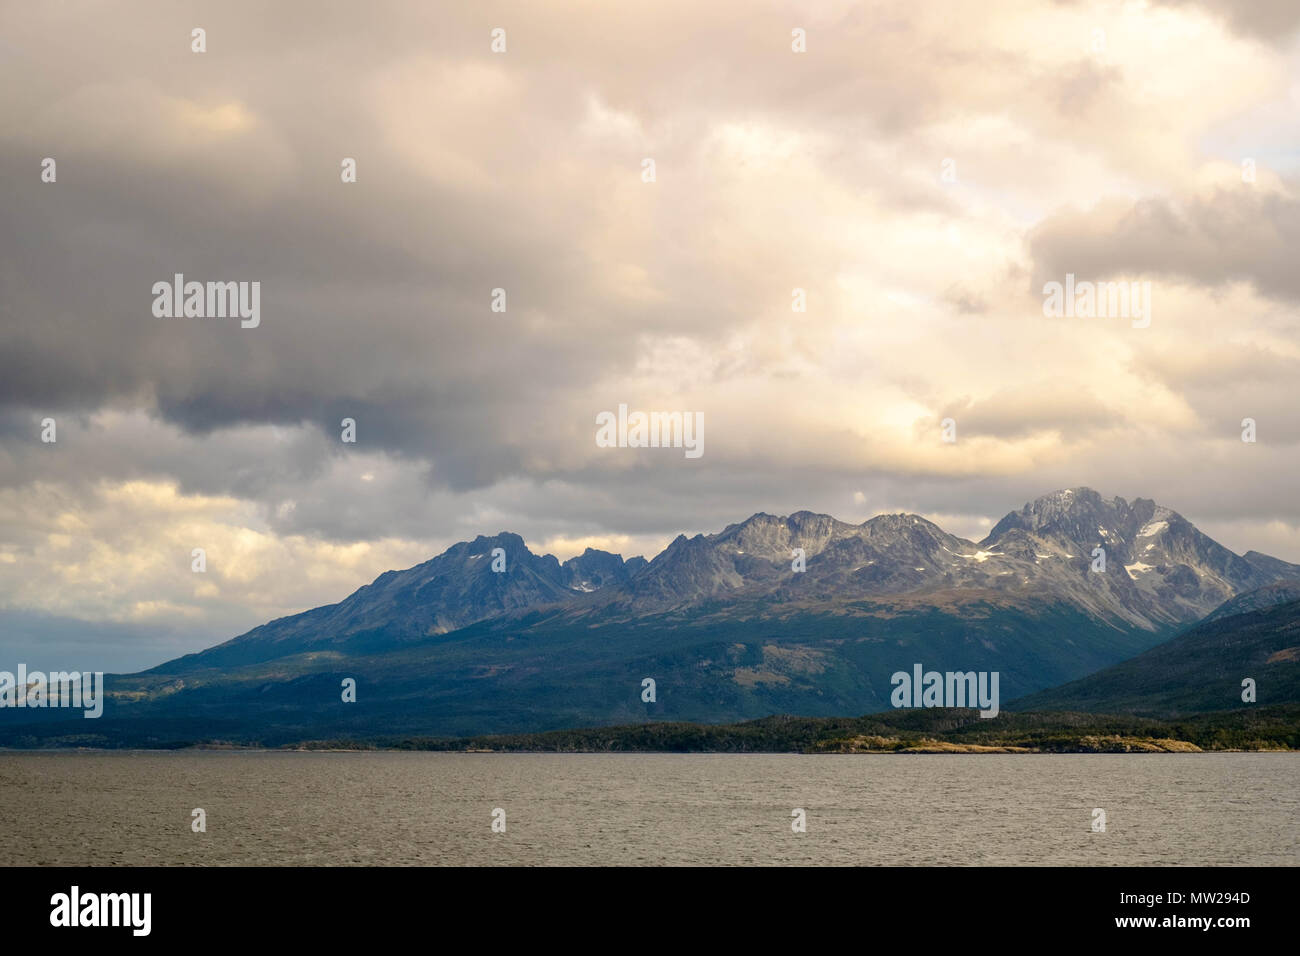 The Beagle Channel and its surrounding mountains as seen froma ferry-cruise from Punta Arenas to Puerto Williams, both in Chile. - Stock Image